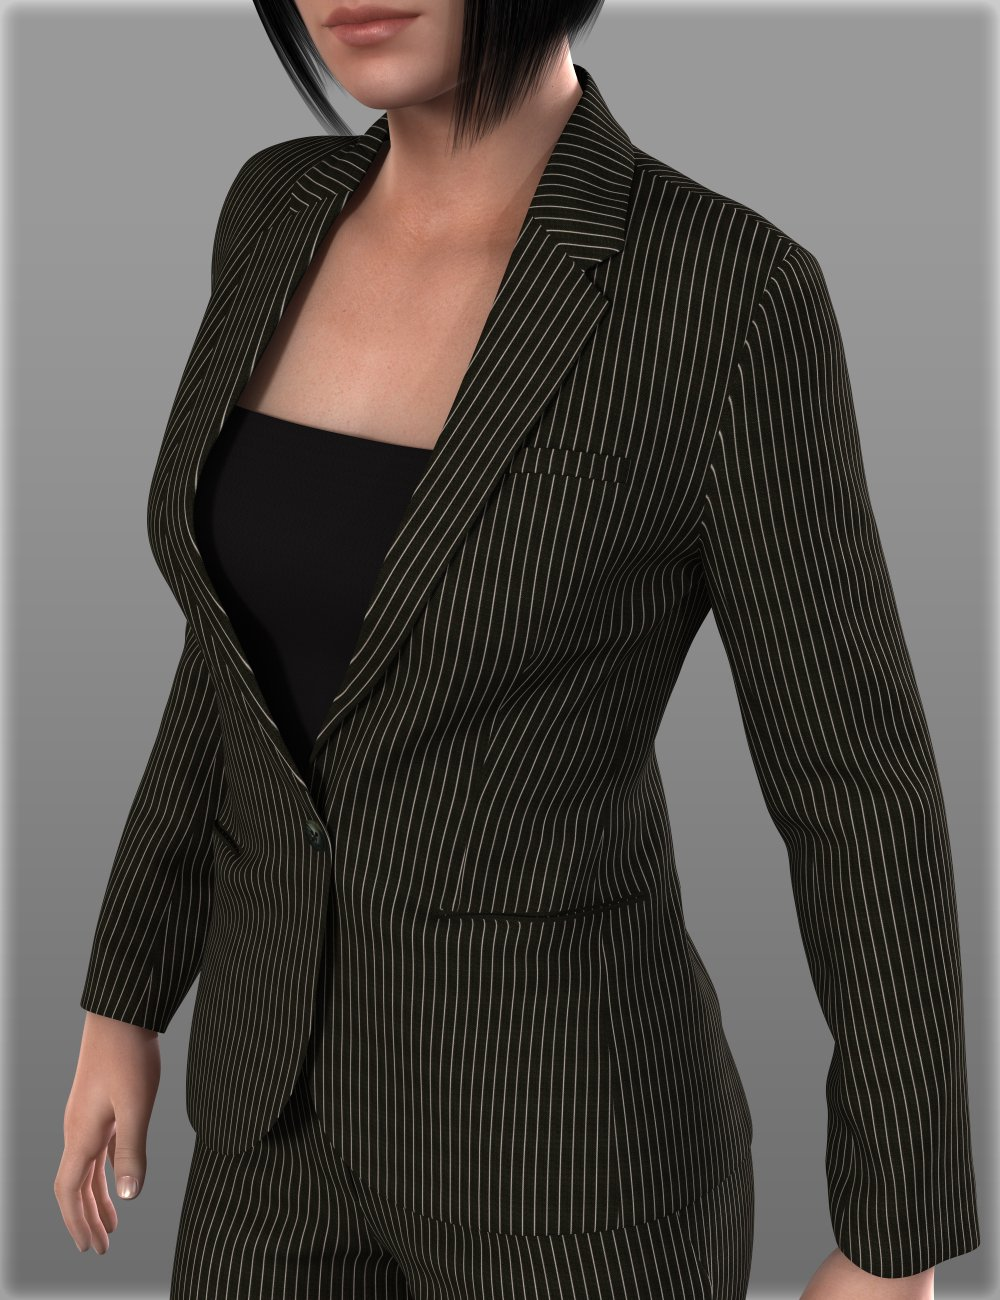 Women's Suits B for Genesis 2 Female(s) by: IH Kang, 3D Models by Daz 3D